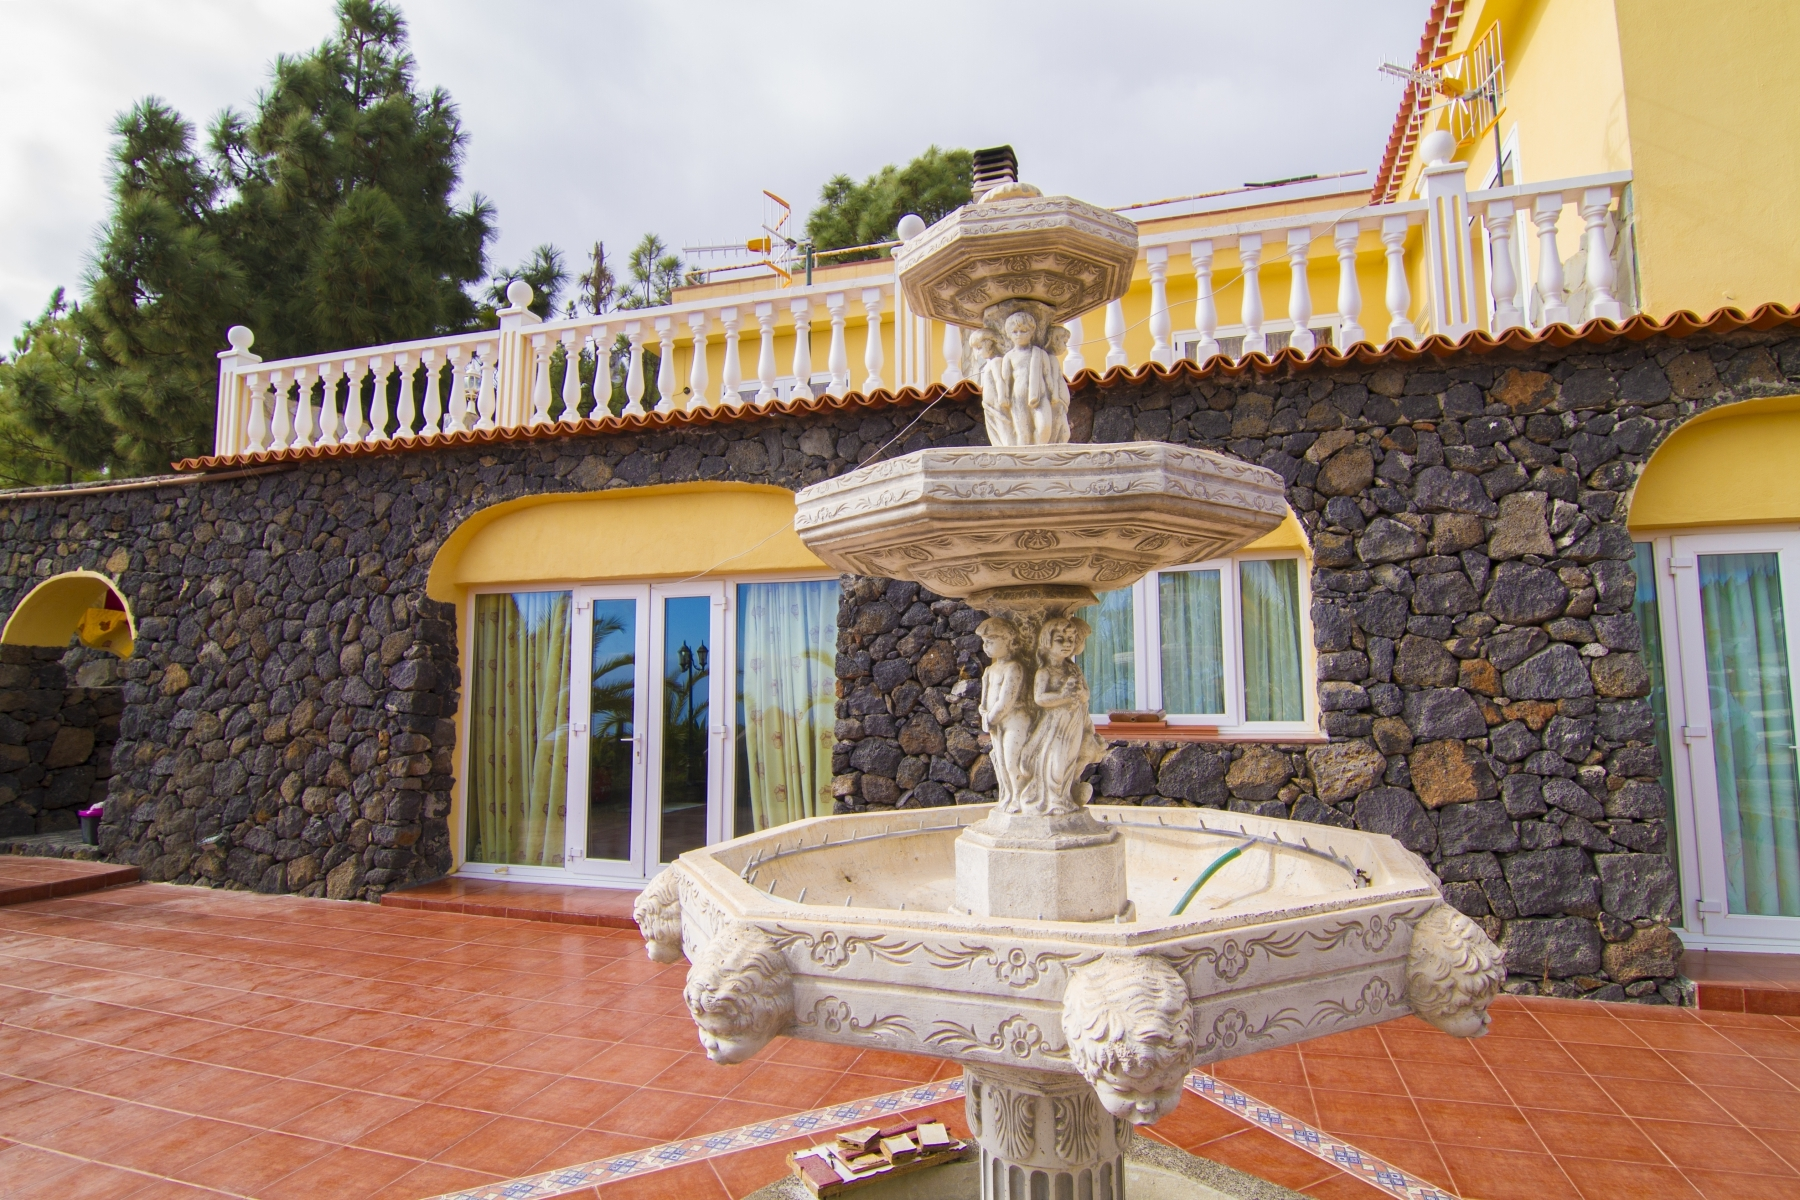 Properties for Sale in Tenerife, Canary Islands, Spain | SylkWayStar Real Estate. Finca with vineyard - Cruz de Tea - Granadilla de Abona . Image-21860